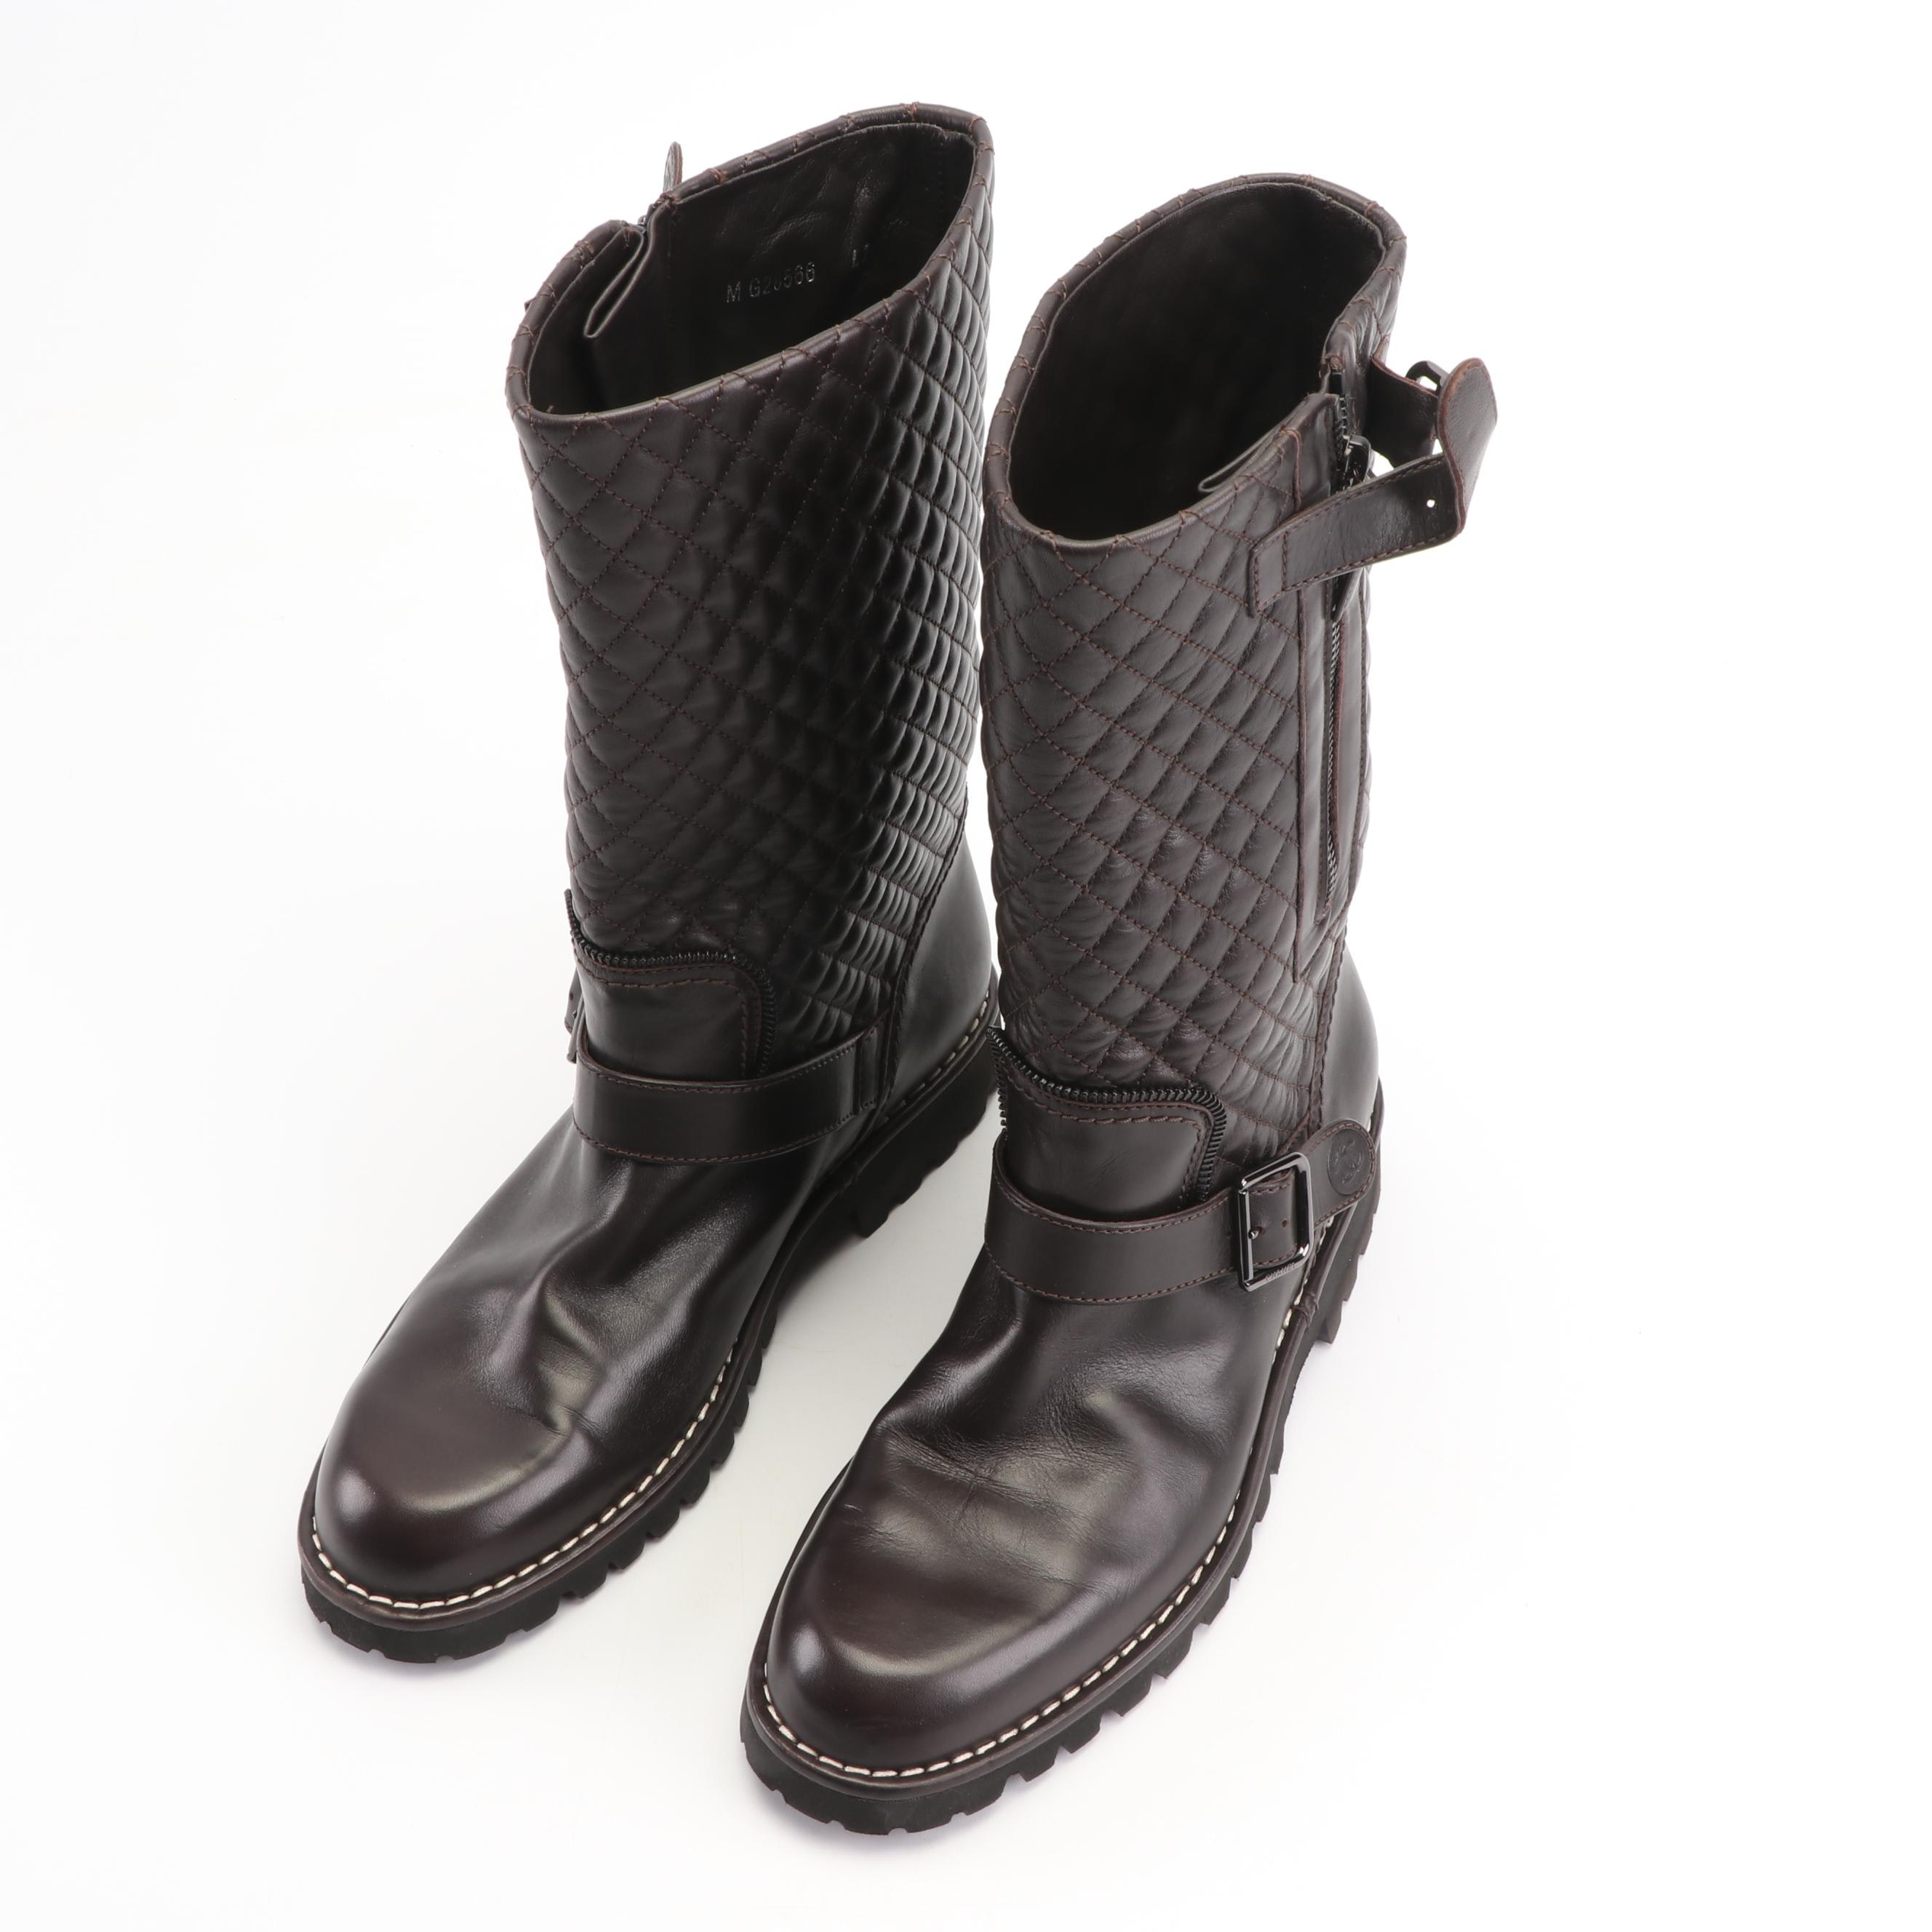 Women's Chanel Quilted Dark Brown Leather Biker Moto Boots, Made in Italy